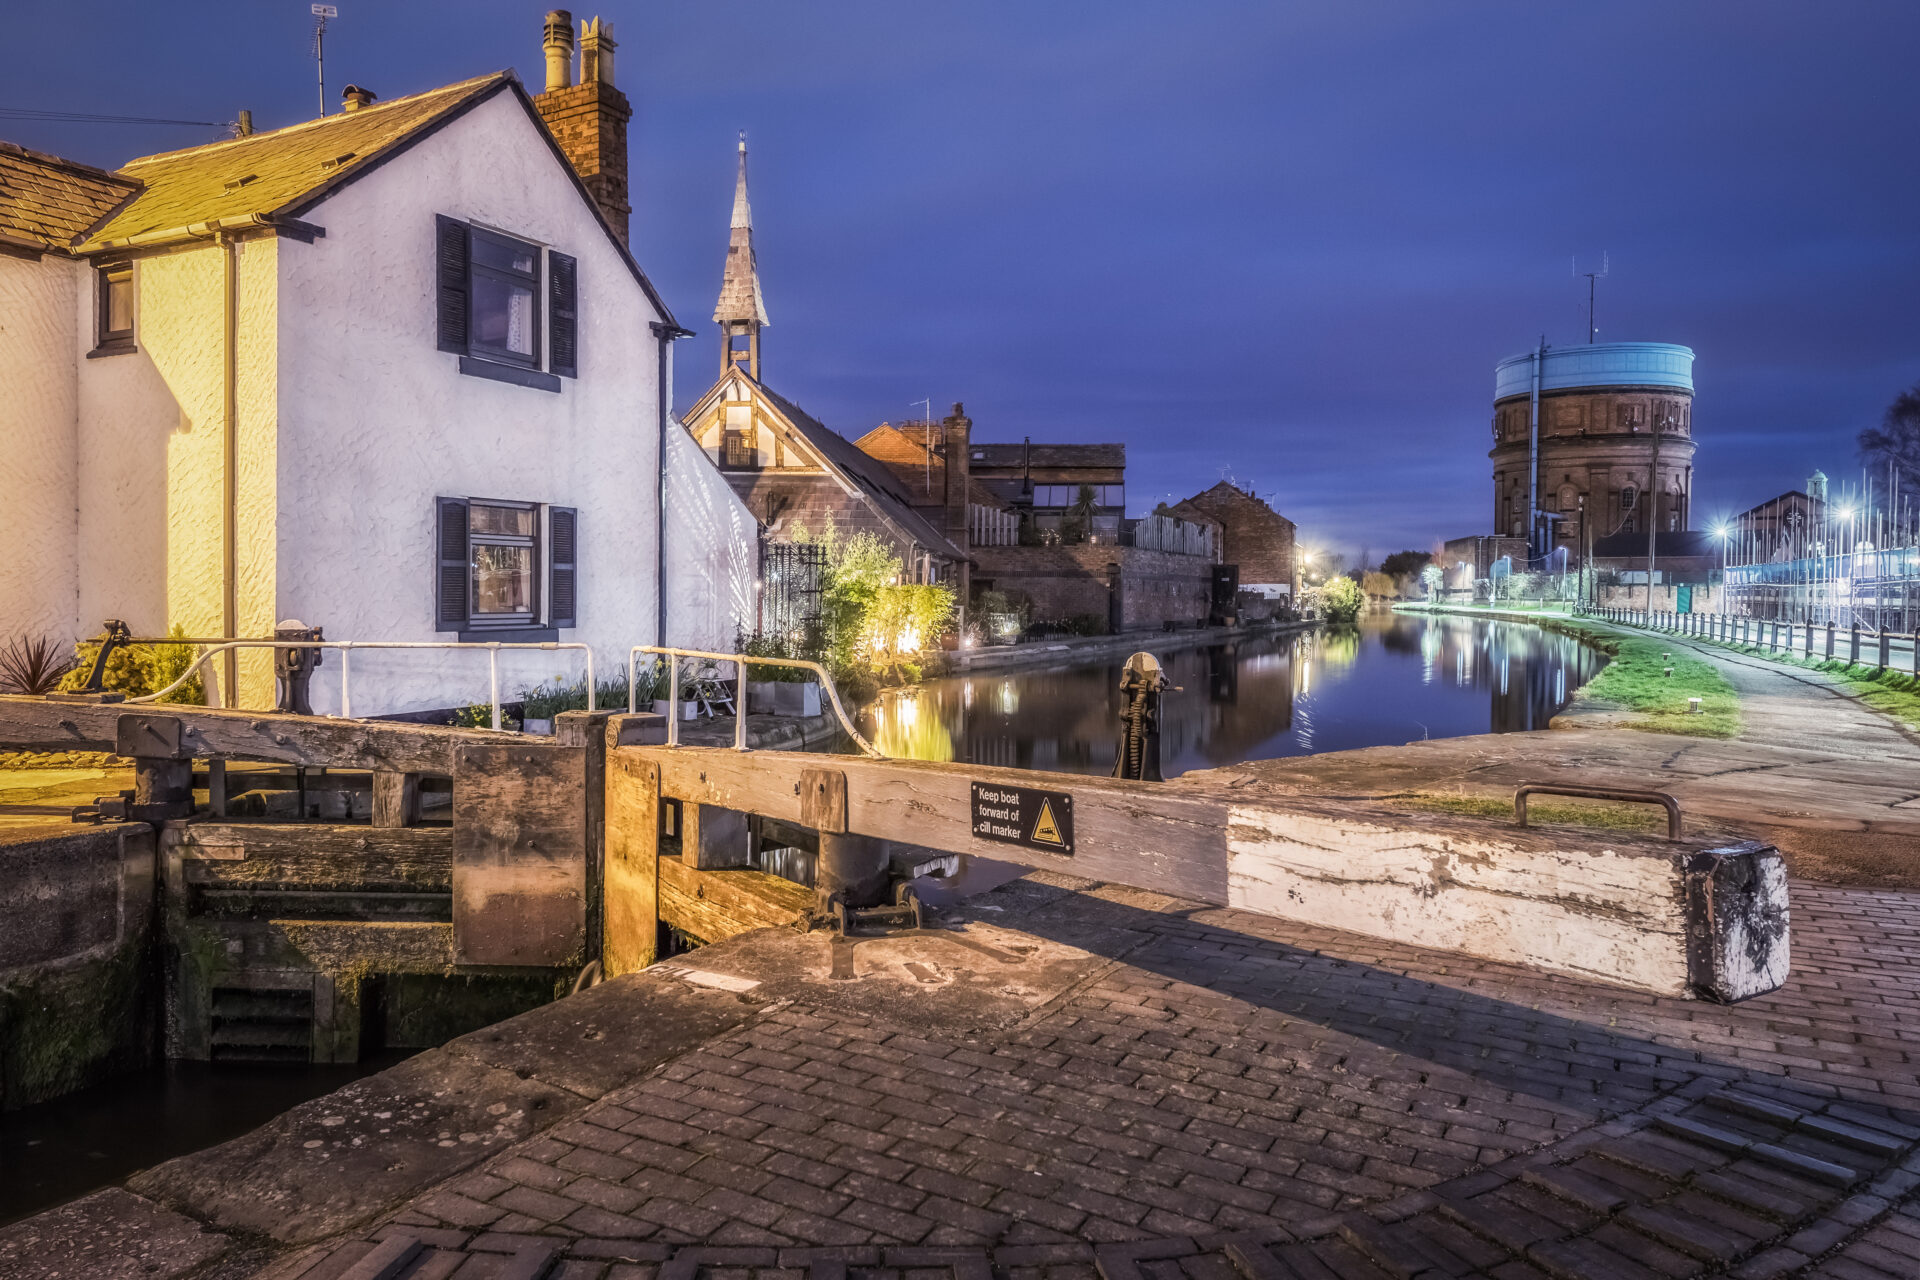 Photo taken in lowlight along the Shropshire Union Canal in Chester